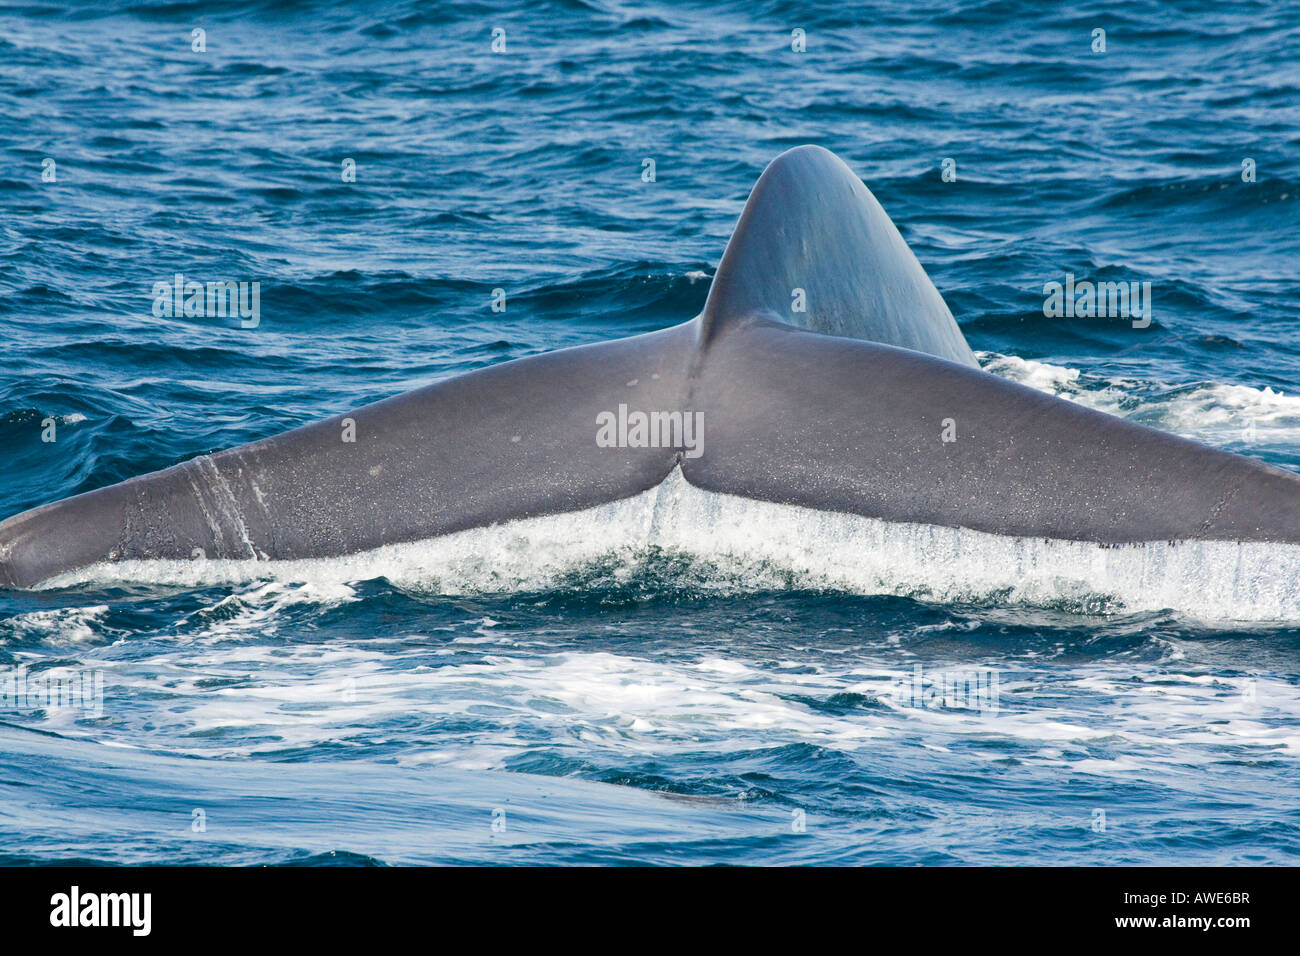 The tail of a blue whale, Balaenoptera musculus, off the coast of California, USA. - Stock Image